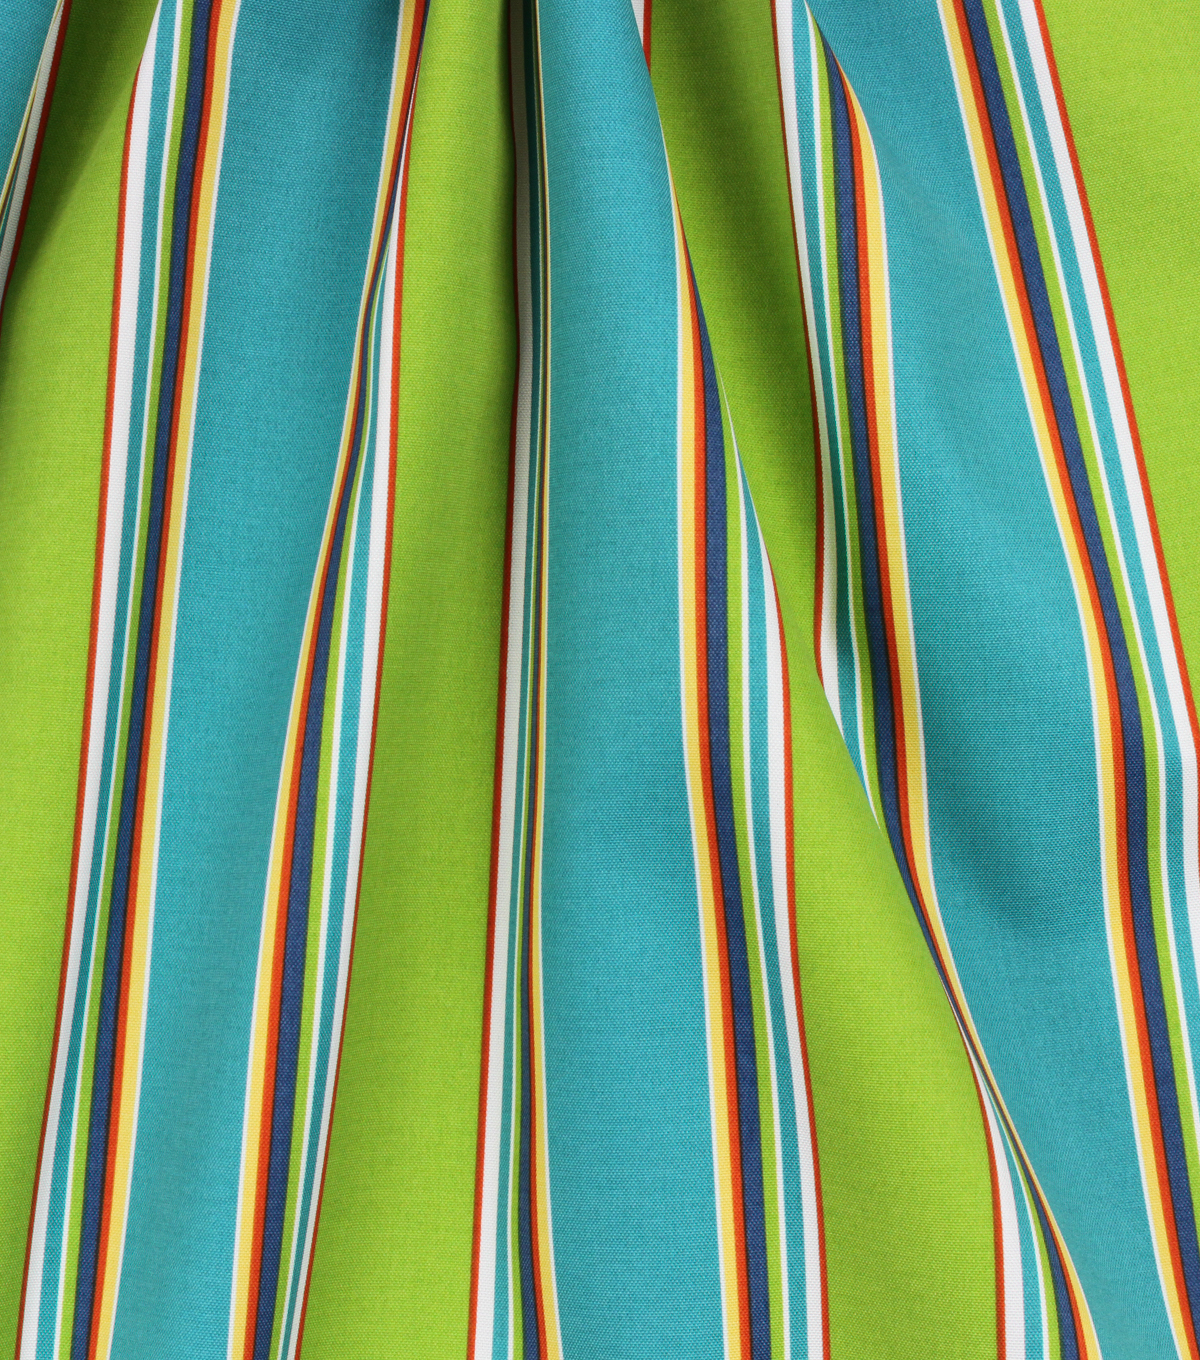 Solarium Outdoor Print Fabric 54\u0027\u0027-Blue & Green Stripes